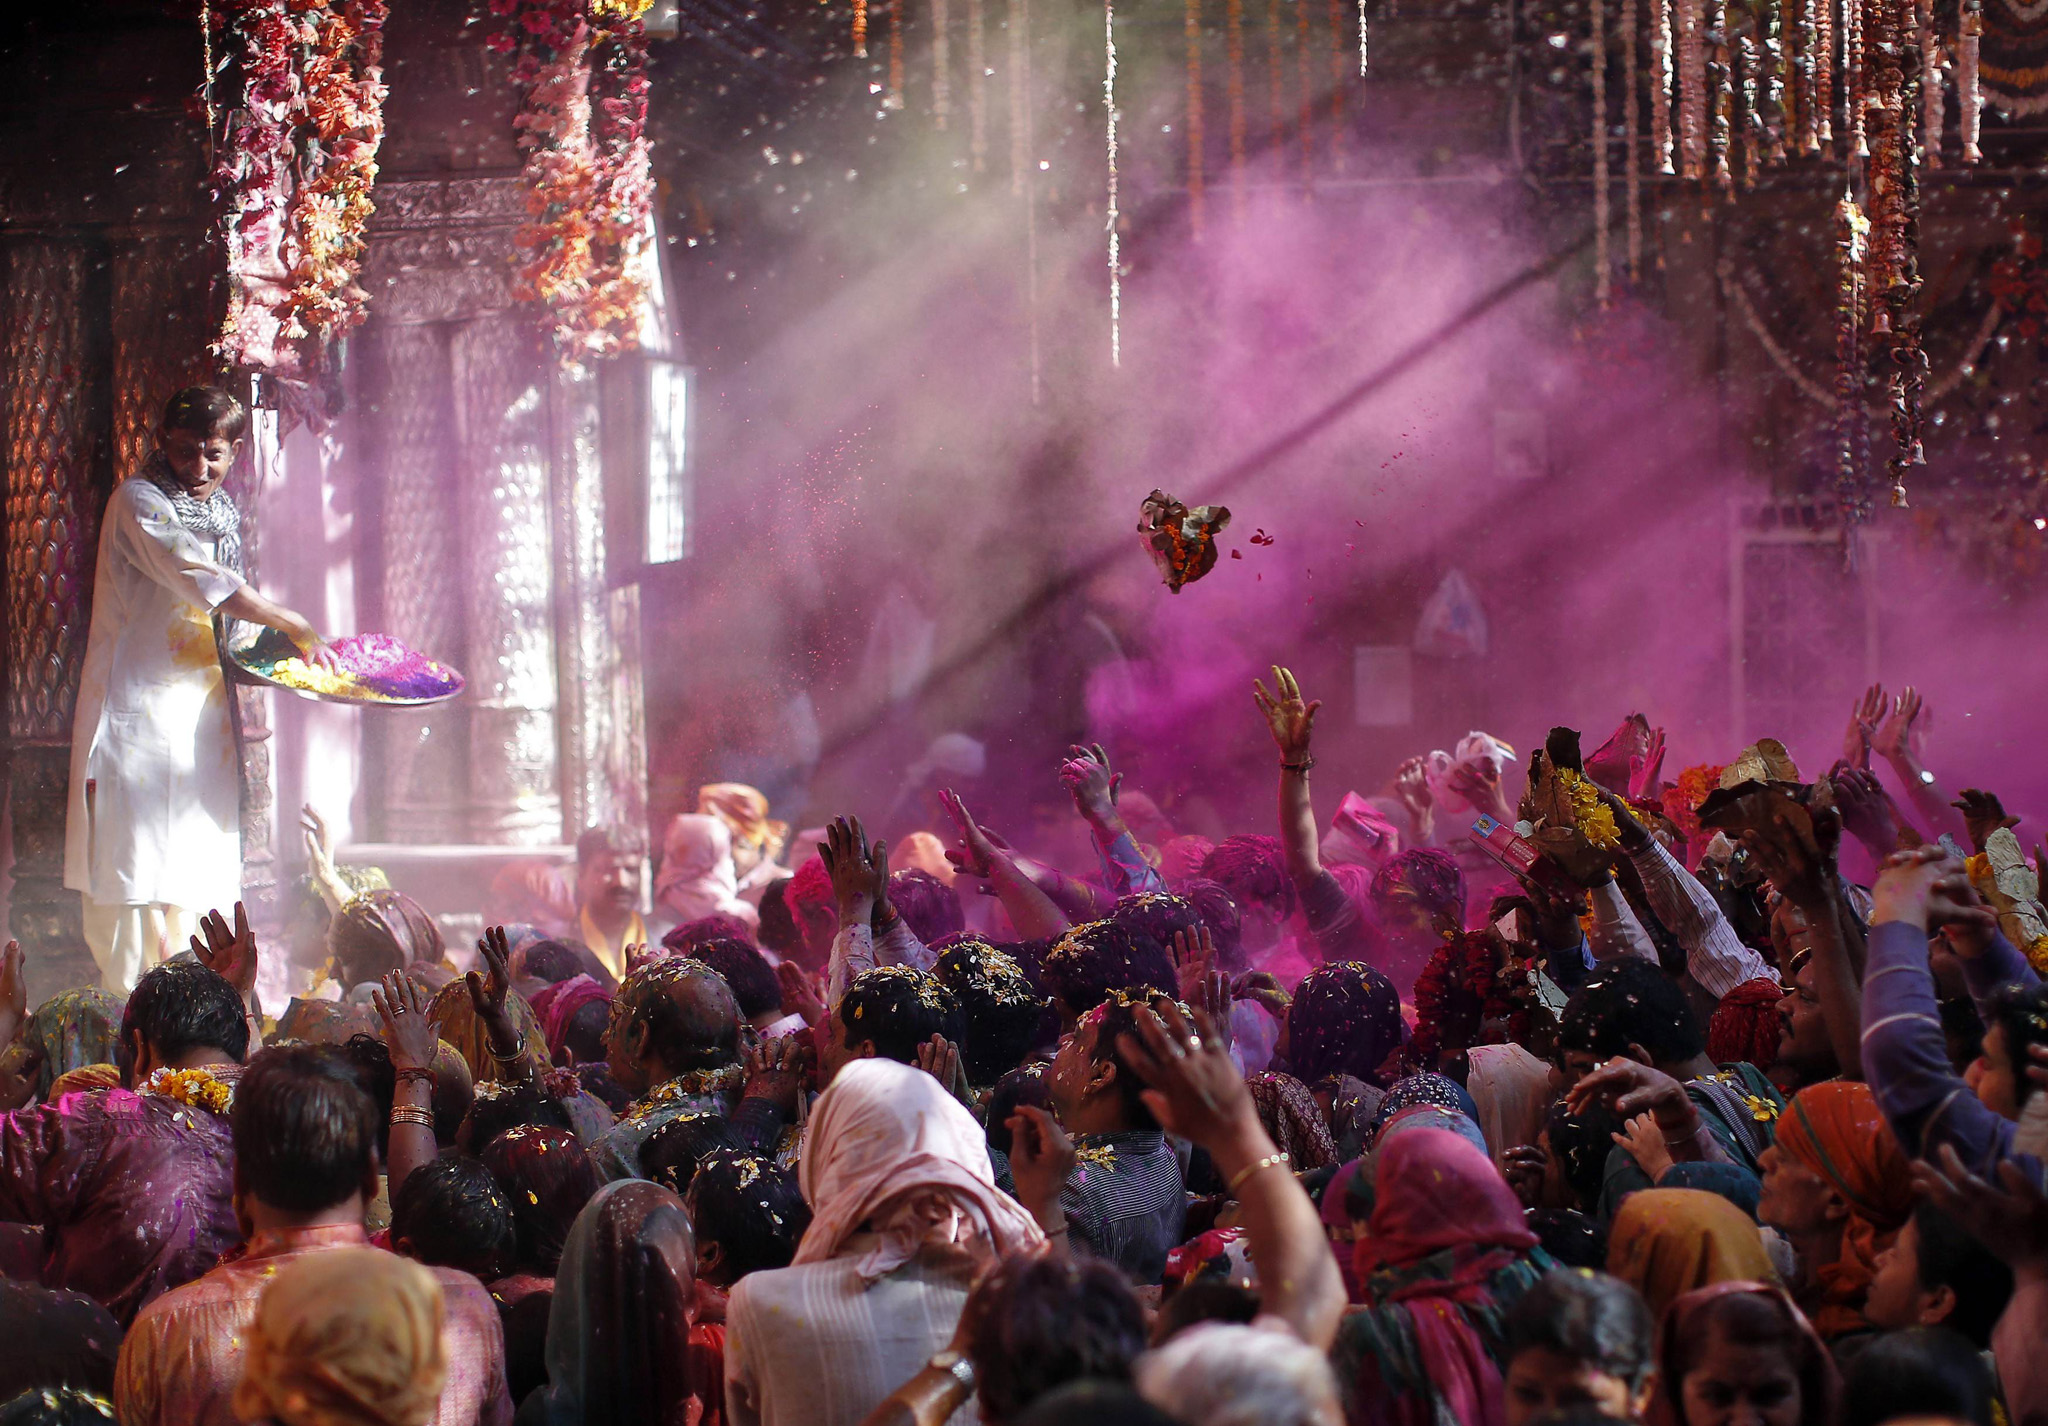 A Hindu priest throws coloured powder and garlands at the devotees during Holi celebrations at Bankey Bihari temple in Vrindavan...A Hindu priest (L) throws coloured powder and garlands at the devotees during Holi celebrations at Bankey Bihari temple in Vrindavan, in the northern Indian state of Uttar Pradesh, March 13, 2014. Holi, also known as the Festival of Colours, heralds the beginning of spring and is celebrated all over India. REUTERS/Ahmad Masood (INDIA - Tags: RELIGION SOCIETY)